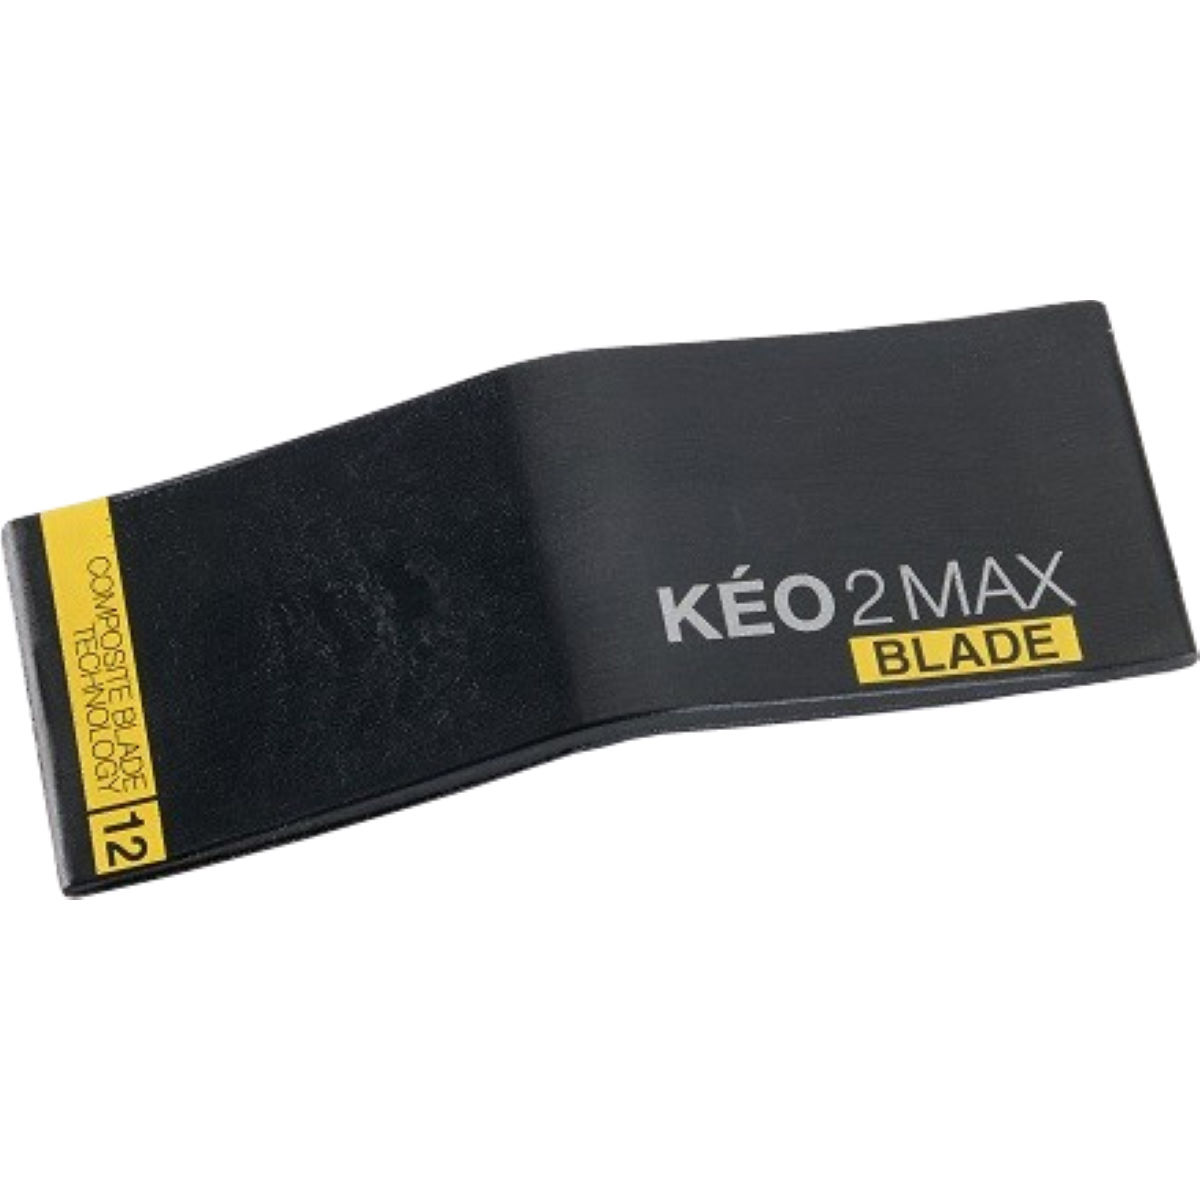 Ressorts de tension Look Keo 2 Max Blade - 12Nm Tension Spring